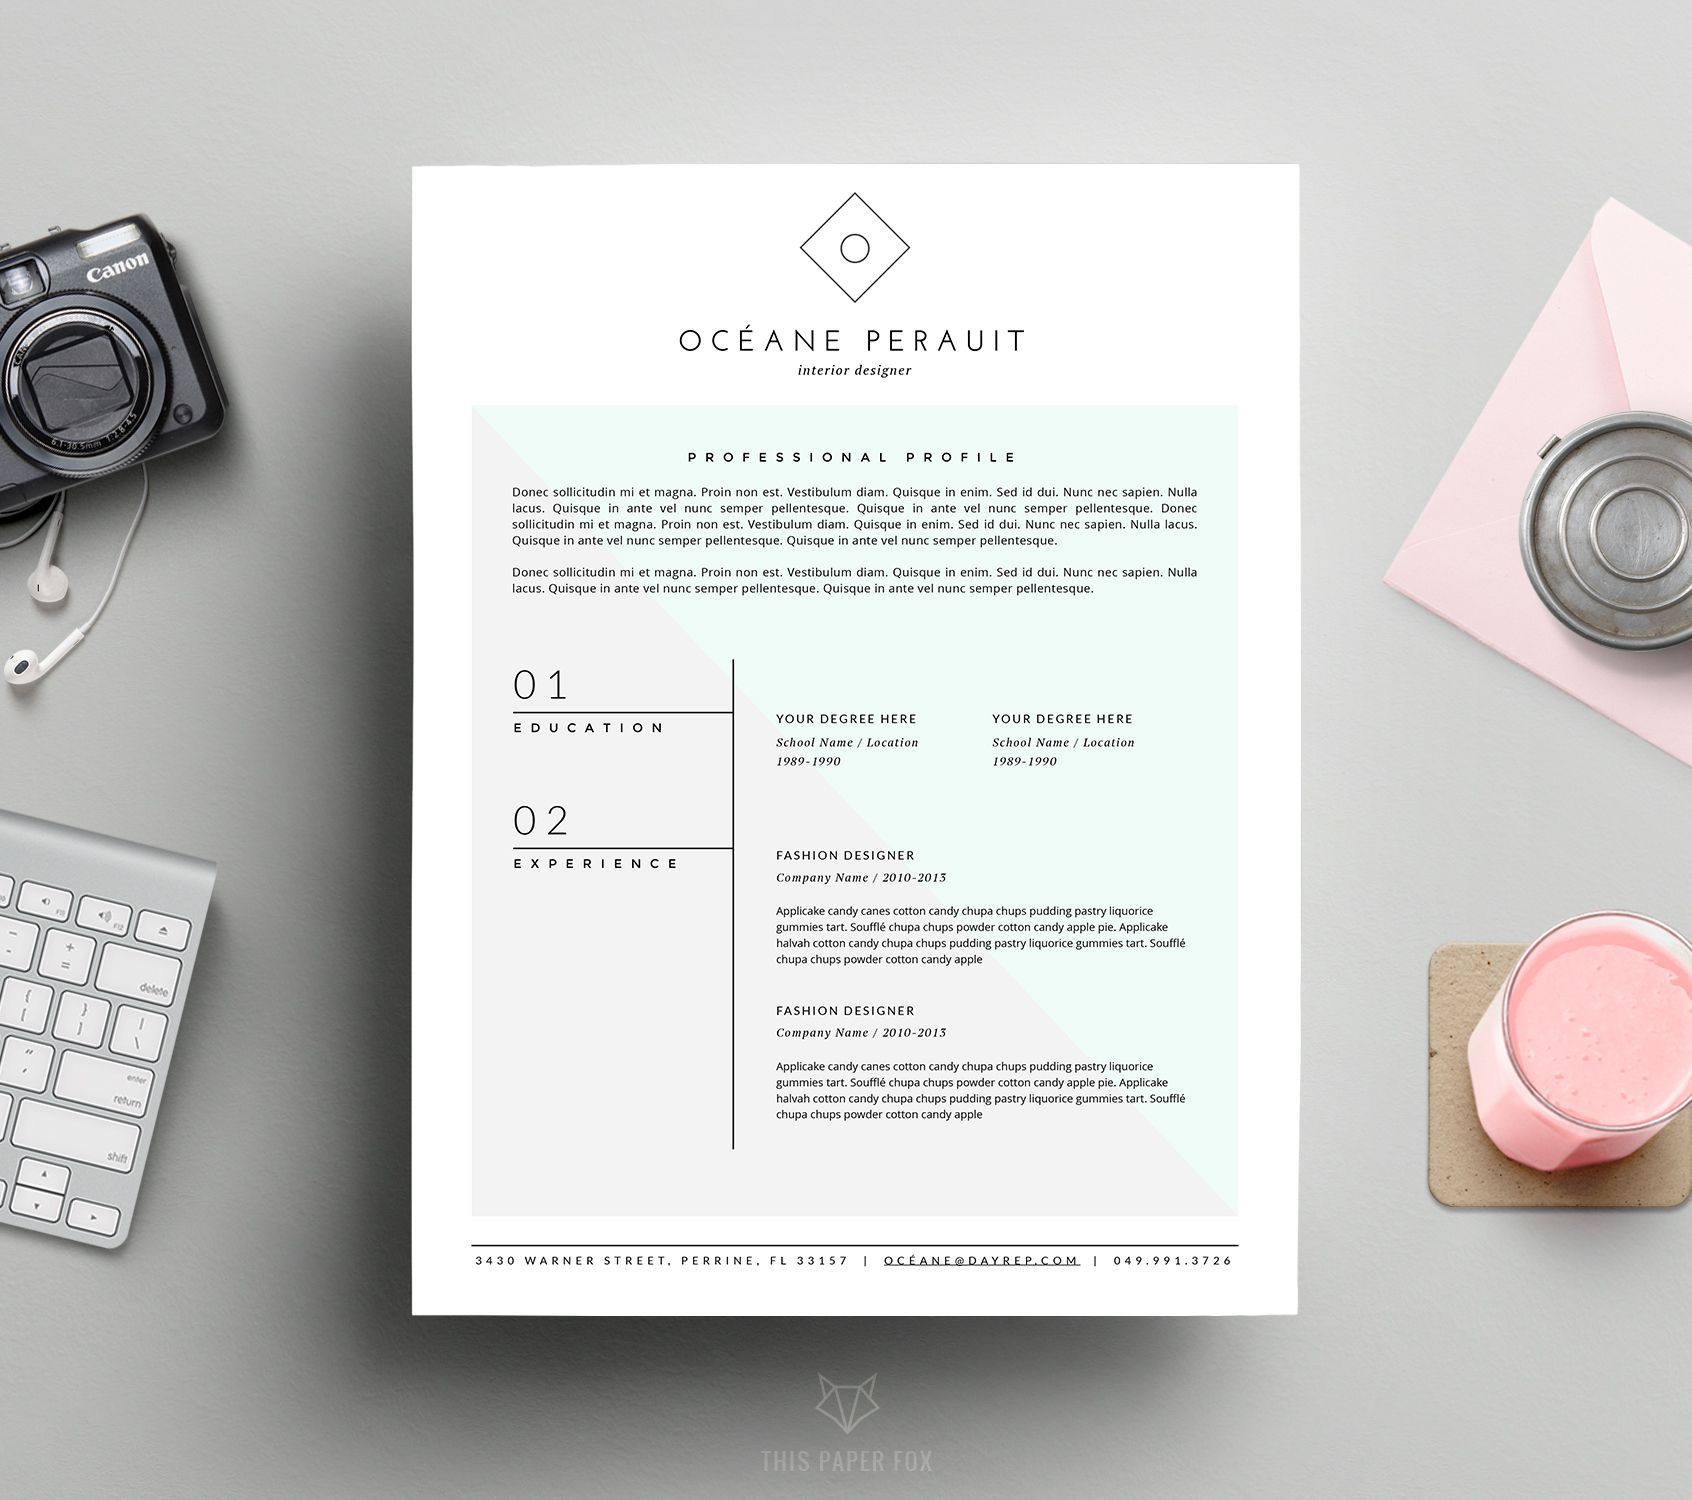 Minimal  Hipster Resume Template We Offer Quality And Thoughtful